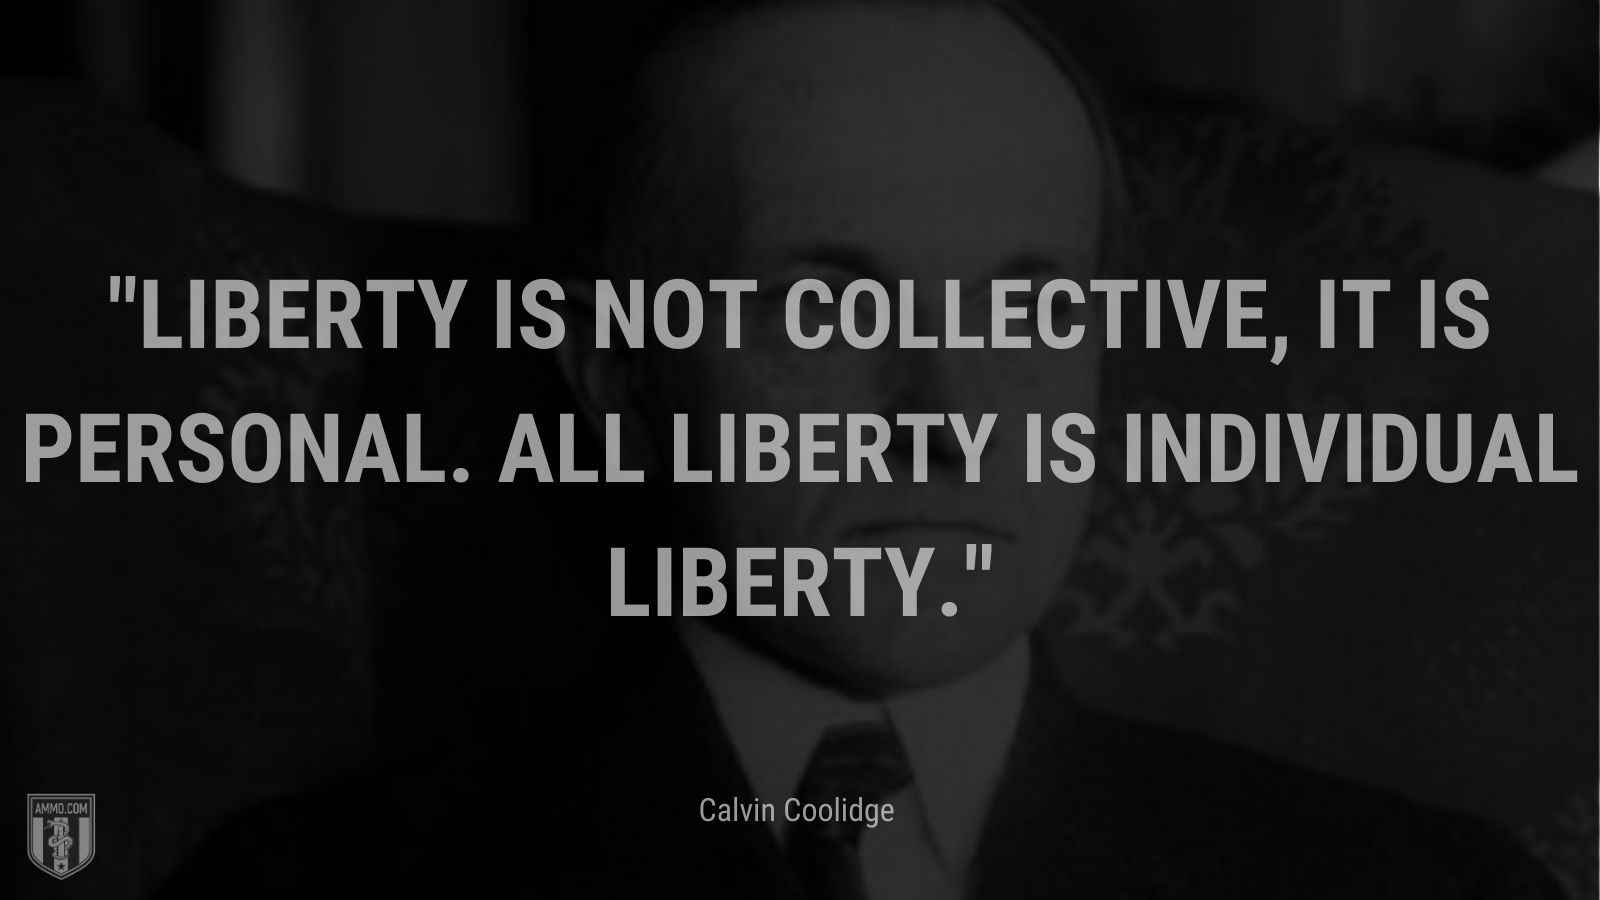 """""""Liberty is not collective, it is personal. All liberty is individual liberty."""" - Calvin Coolidge"""